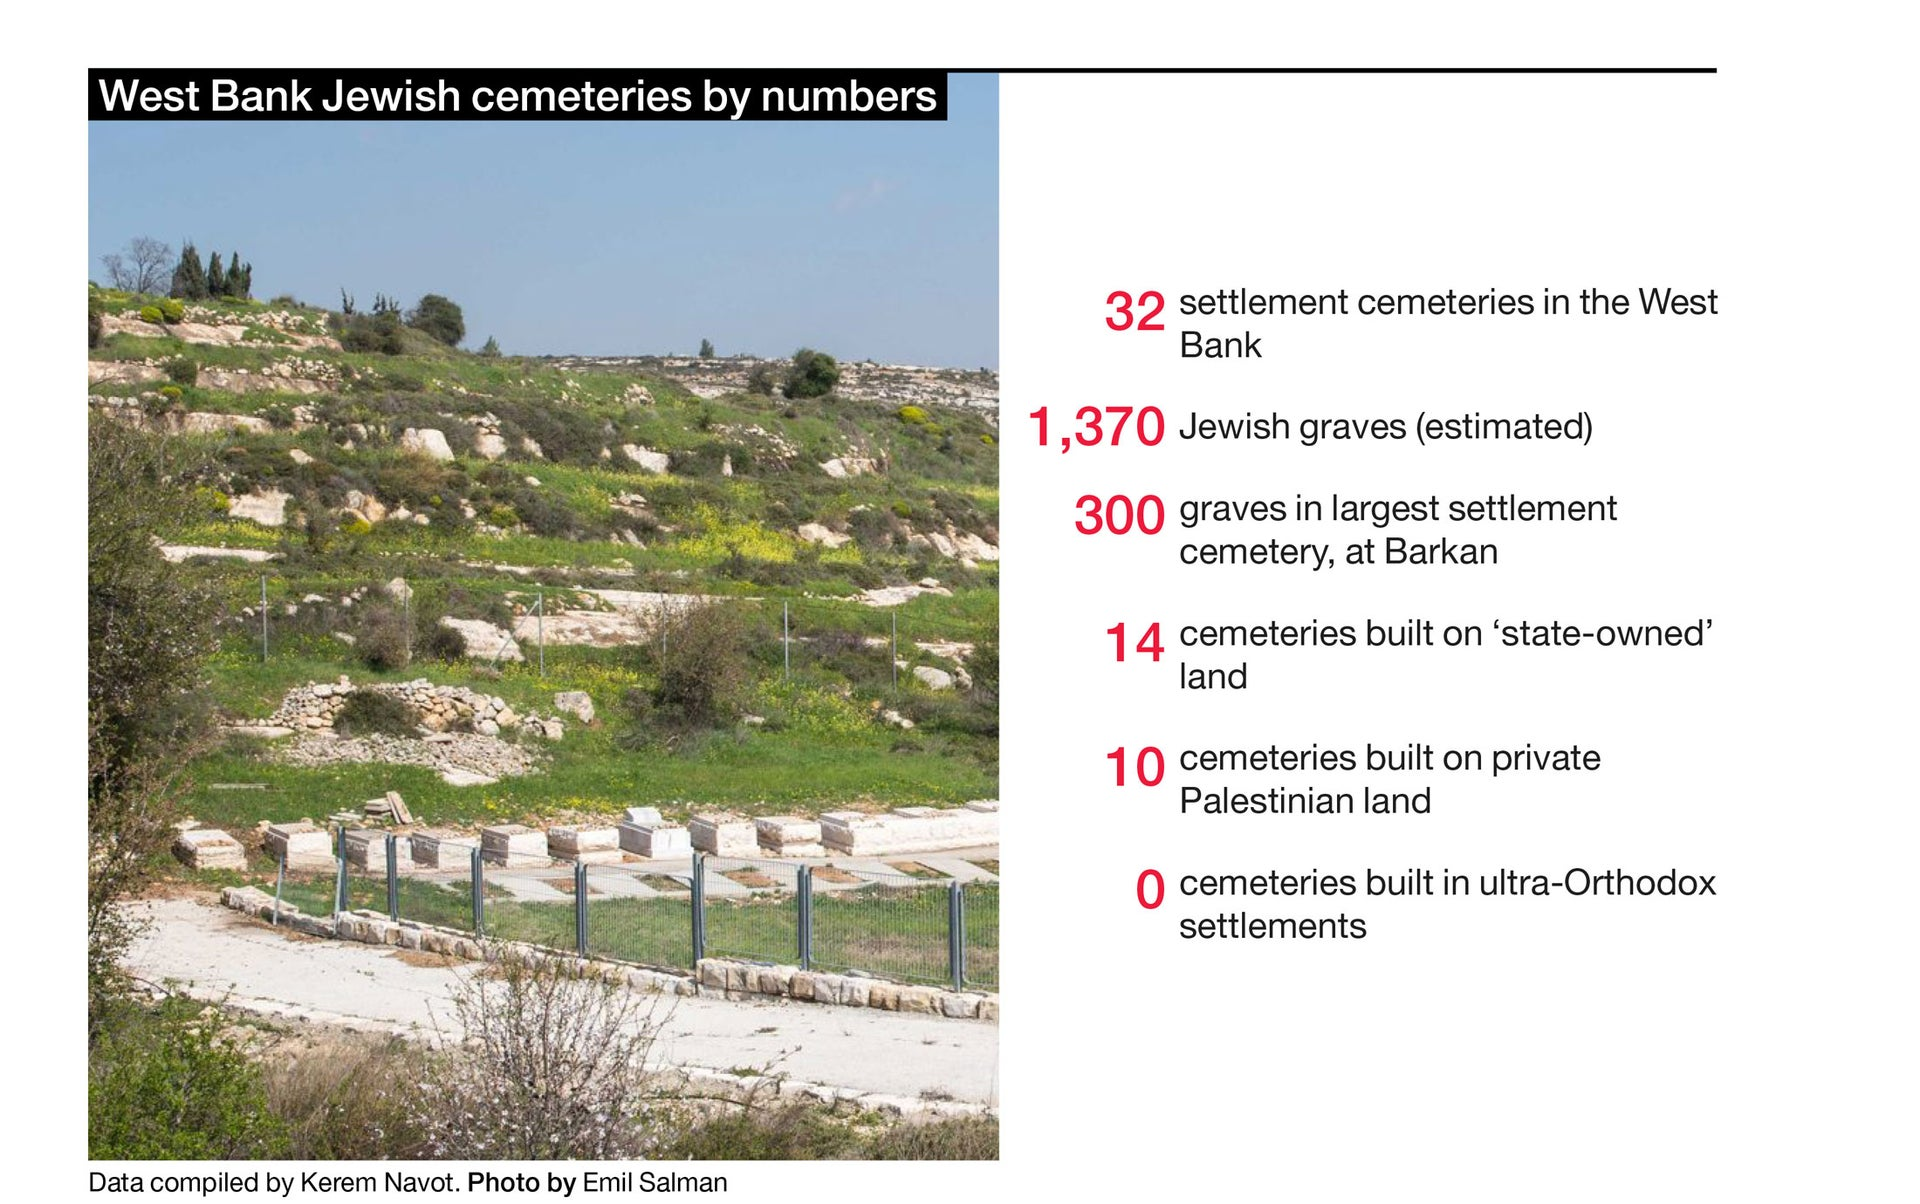 West Bank Jewish cemeteries by numbers